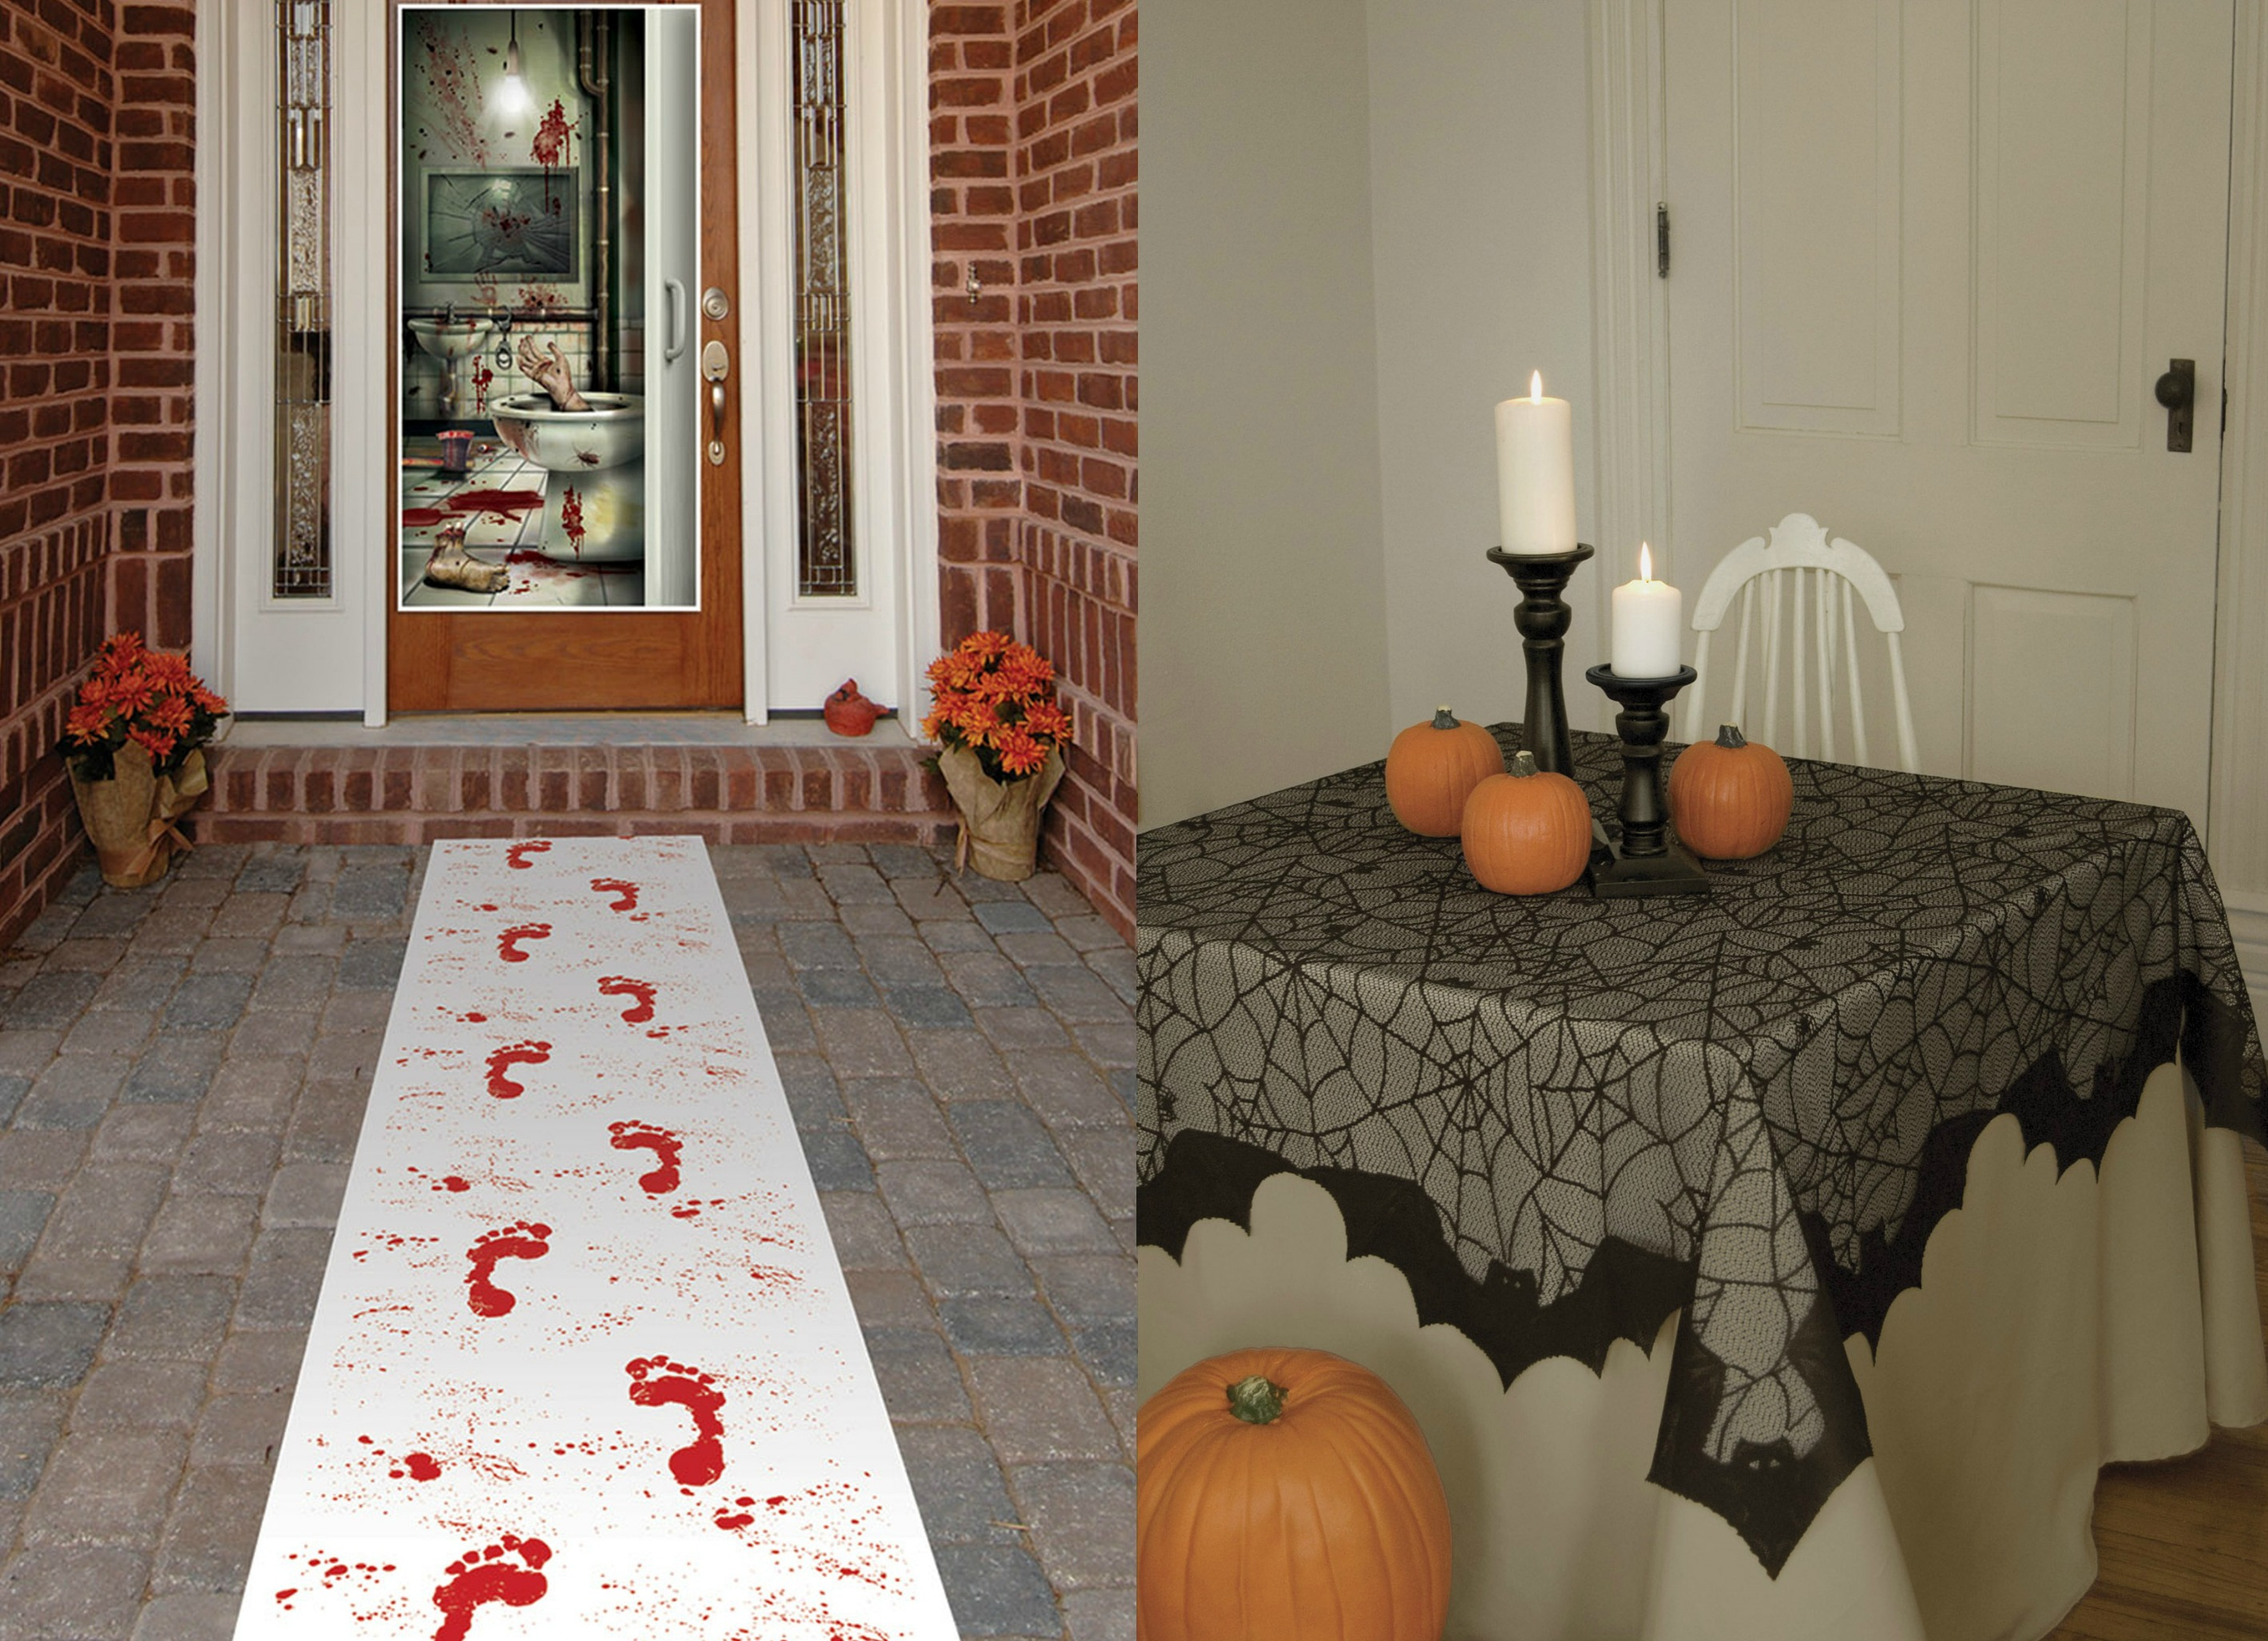 decorations for a spooky wedding